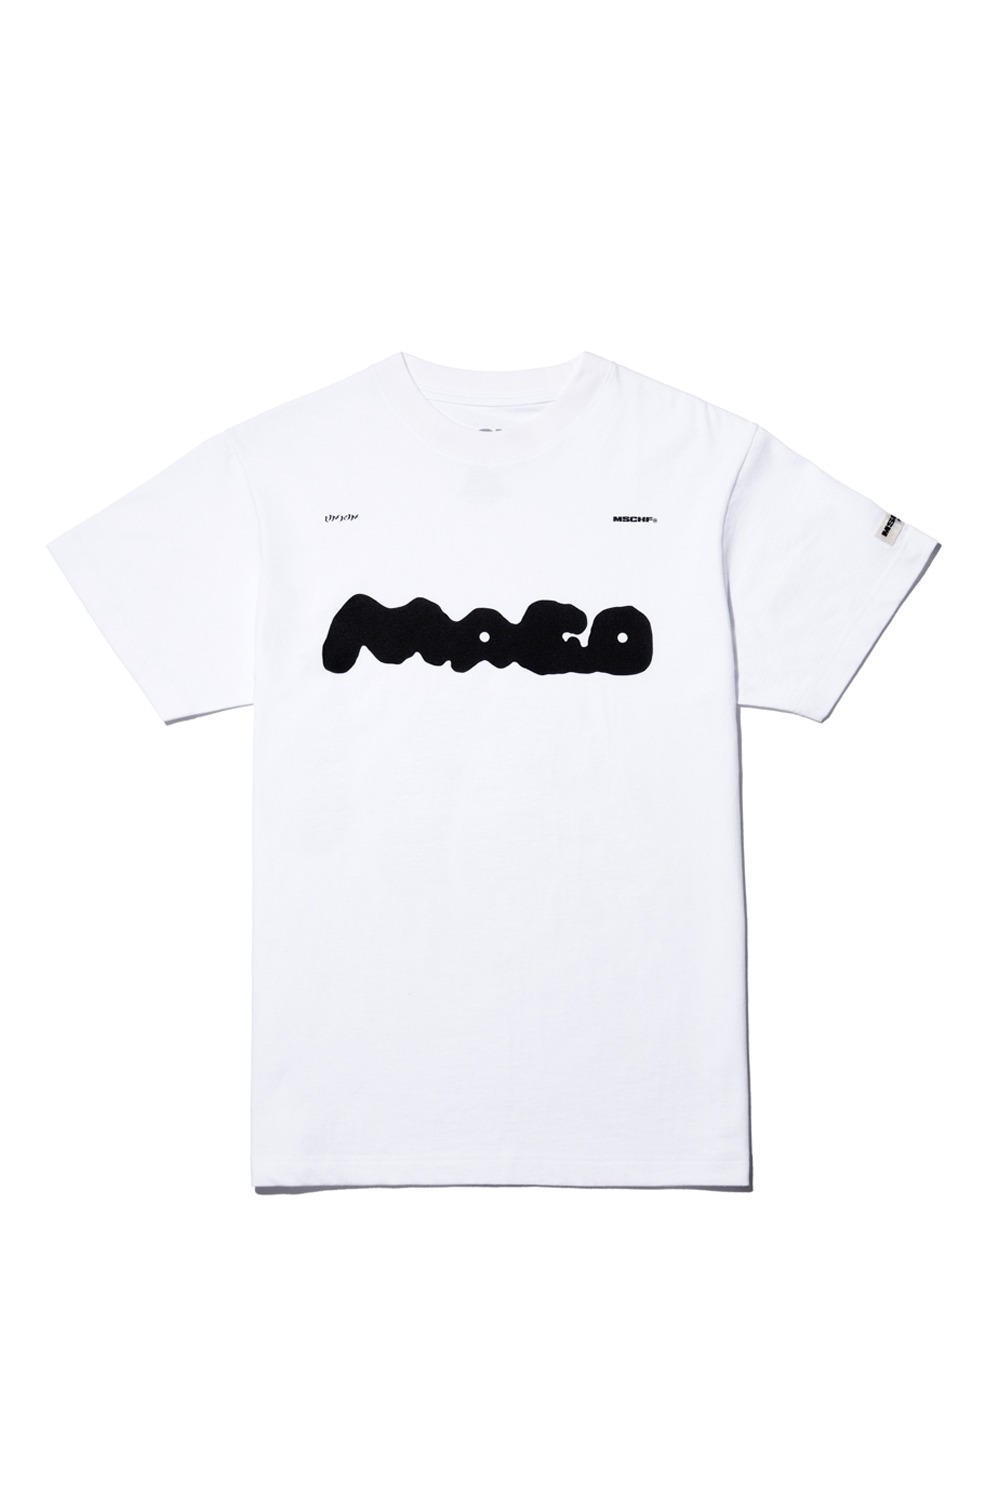 PROJECT MAGO_PROJECT MAGO T-SHIRT_WHITE